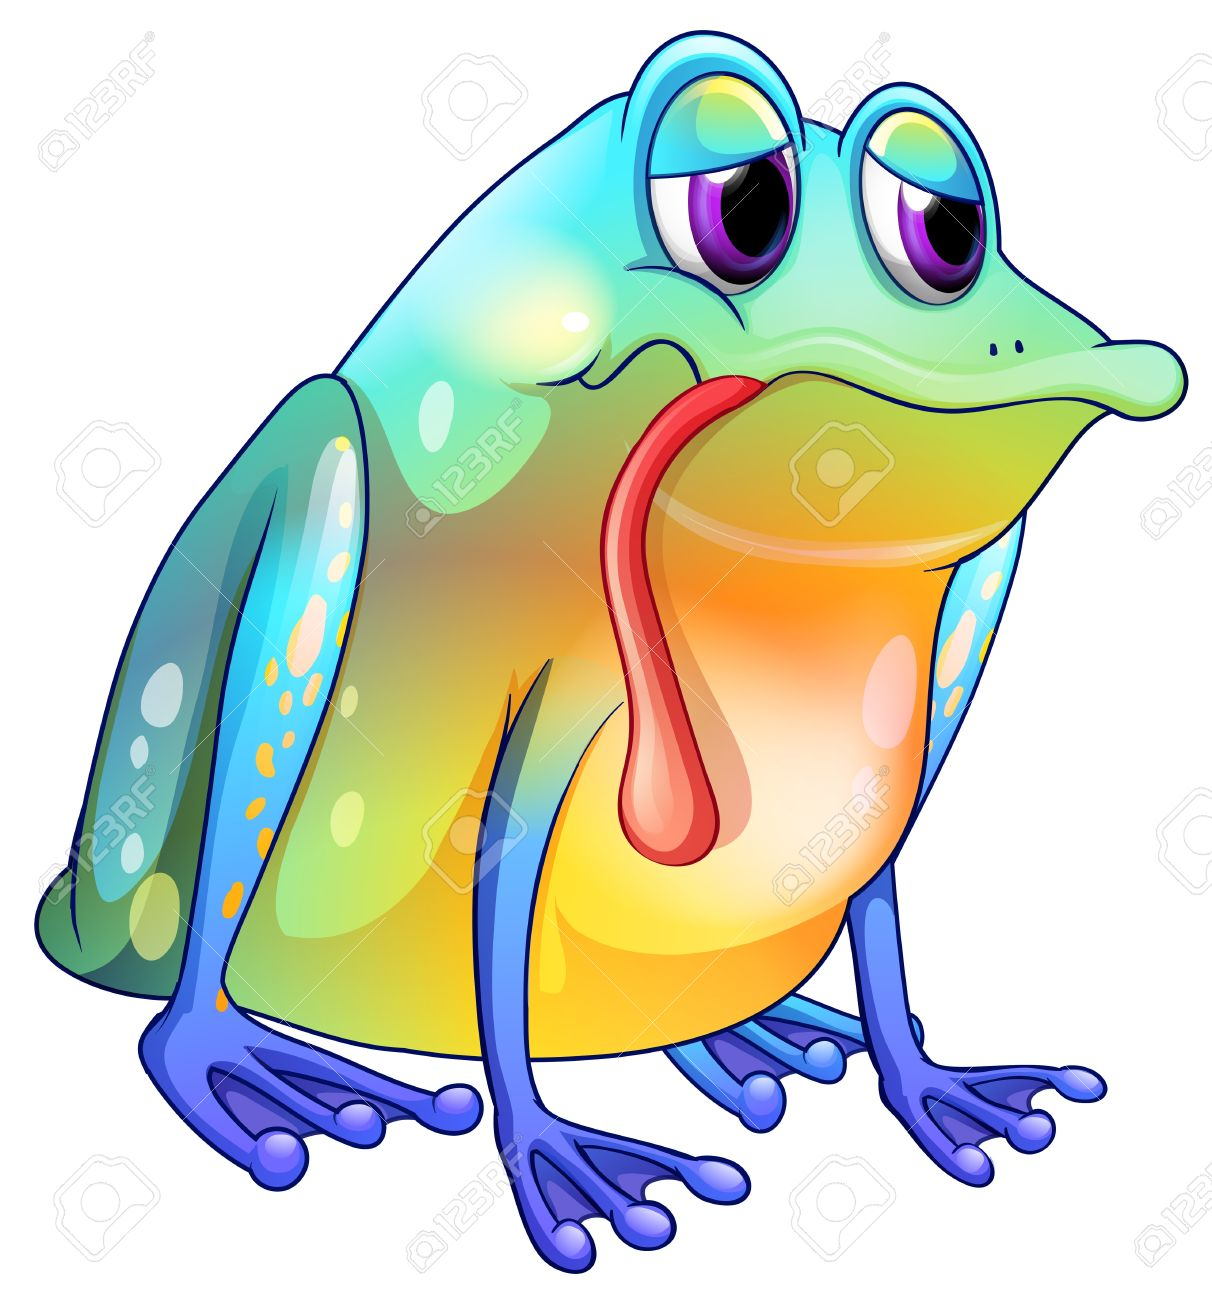 Illustration Of A Colorful Sad Frog On A White Background Royalty.